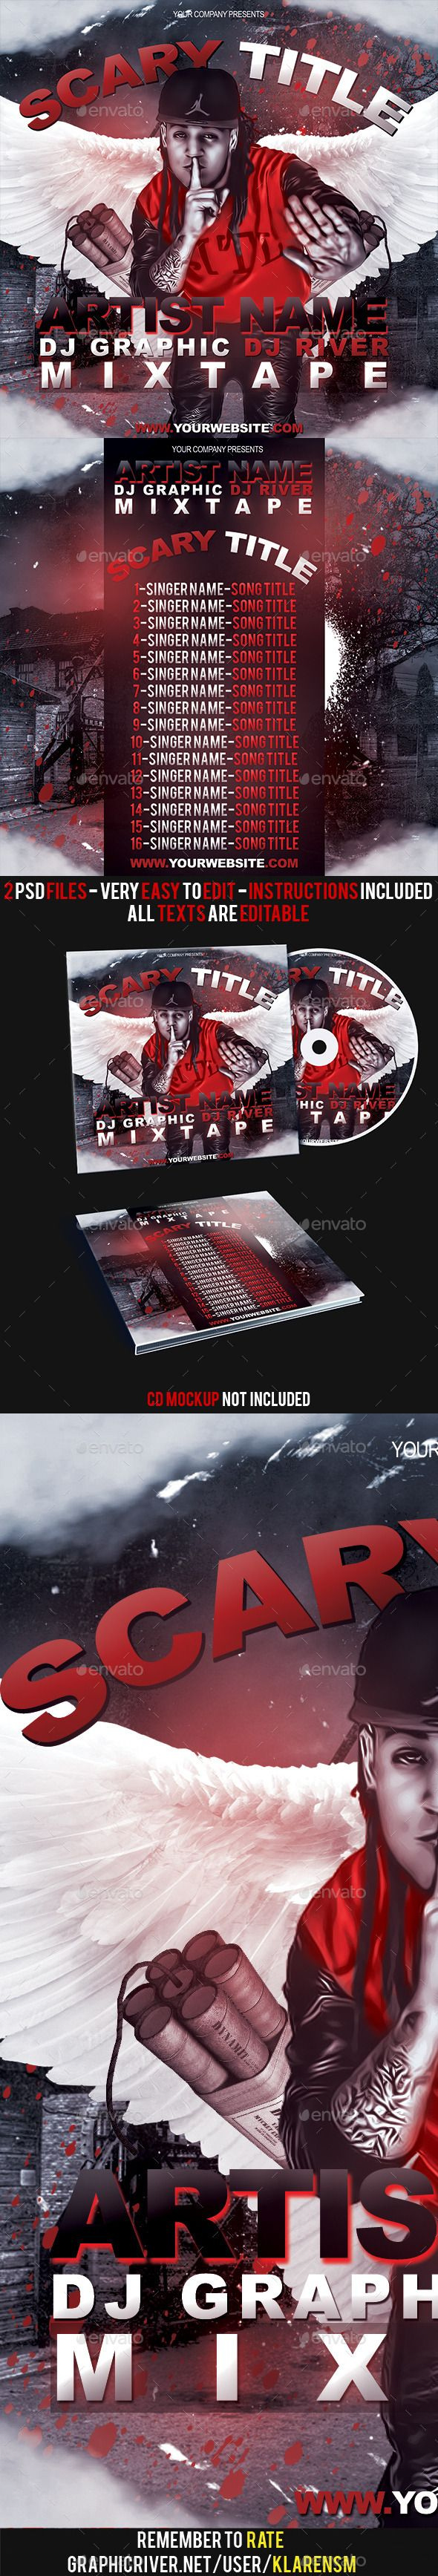 Red Hip Hop / Rap Mixtape Album CD Cover Template — Photoshop PSD #singer #covers • Available here → https://graphicriver.net/item/red-hip-hop-rap-mixtape-album-cd-cover-template/8813469?ref=pxcr